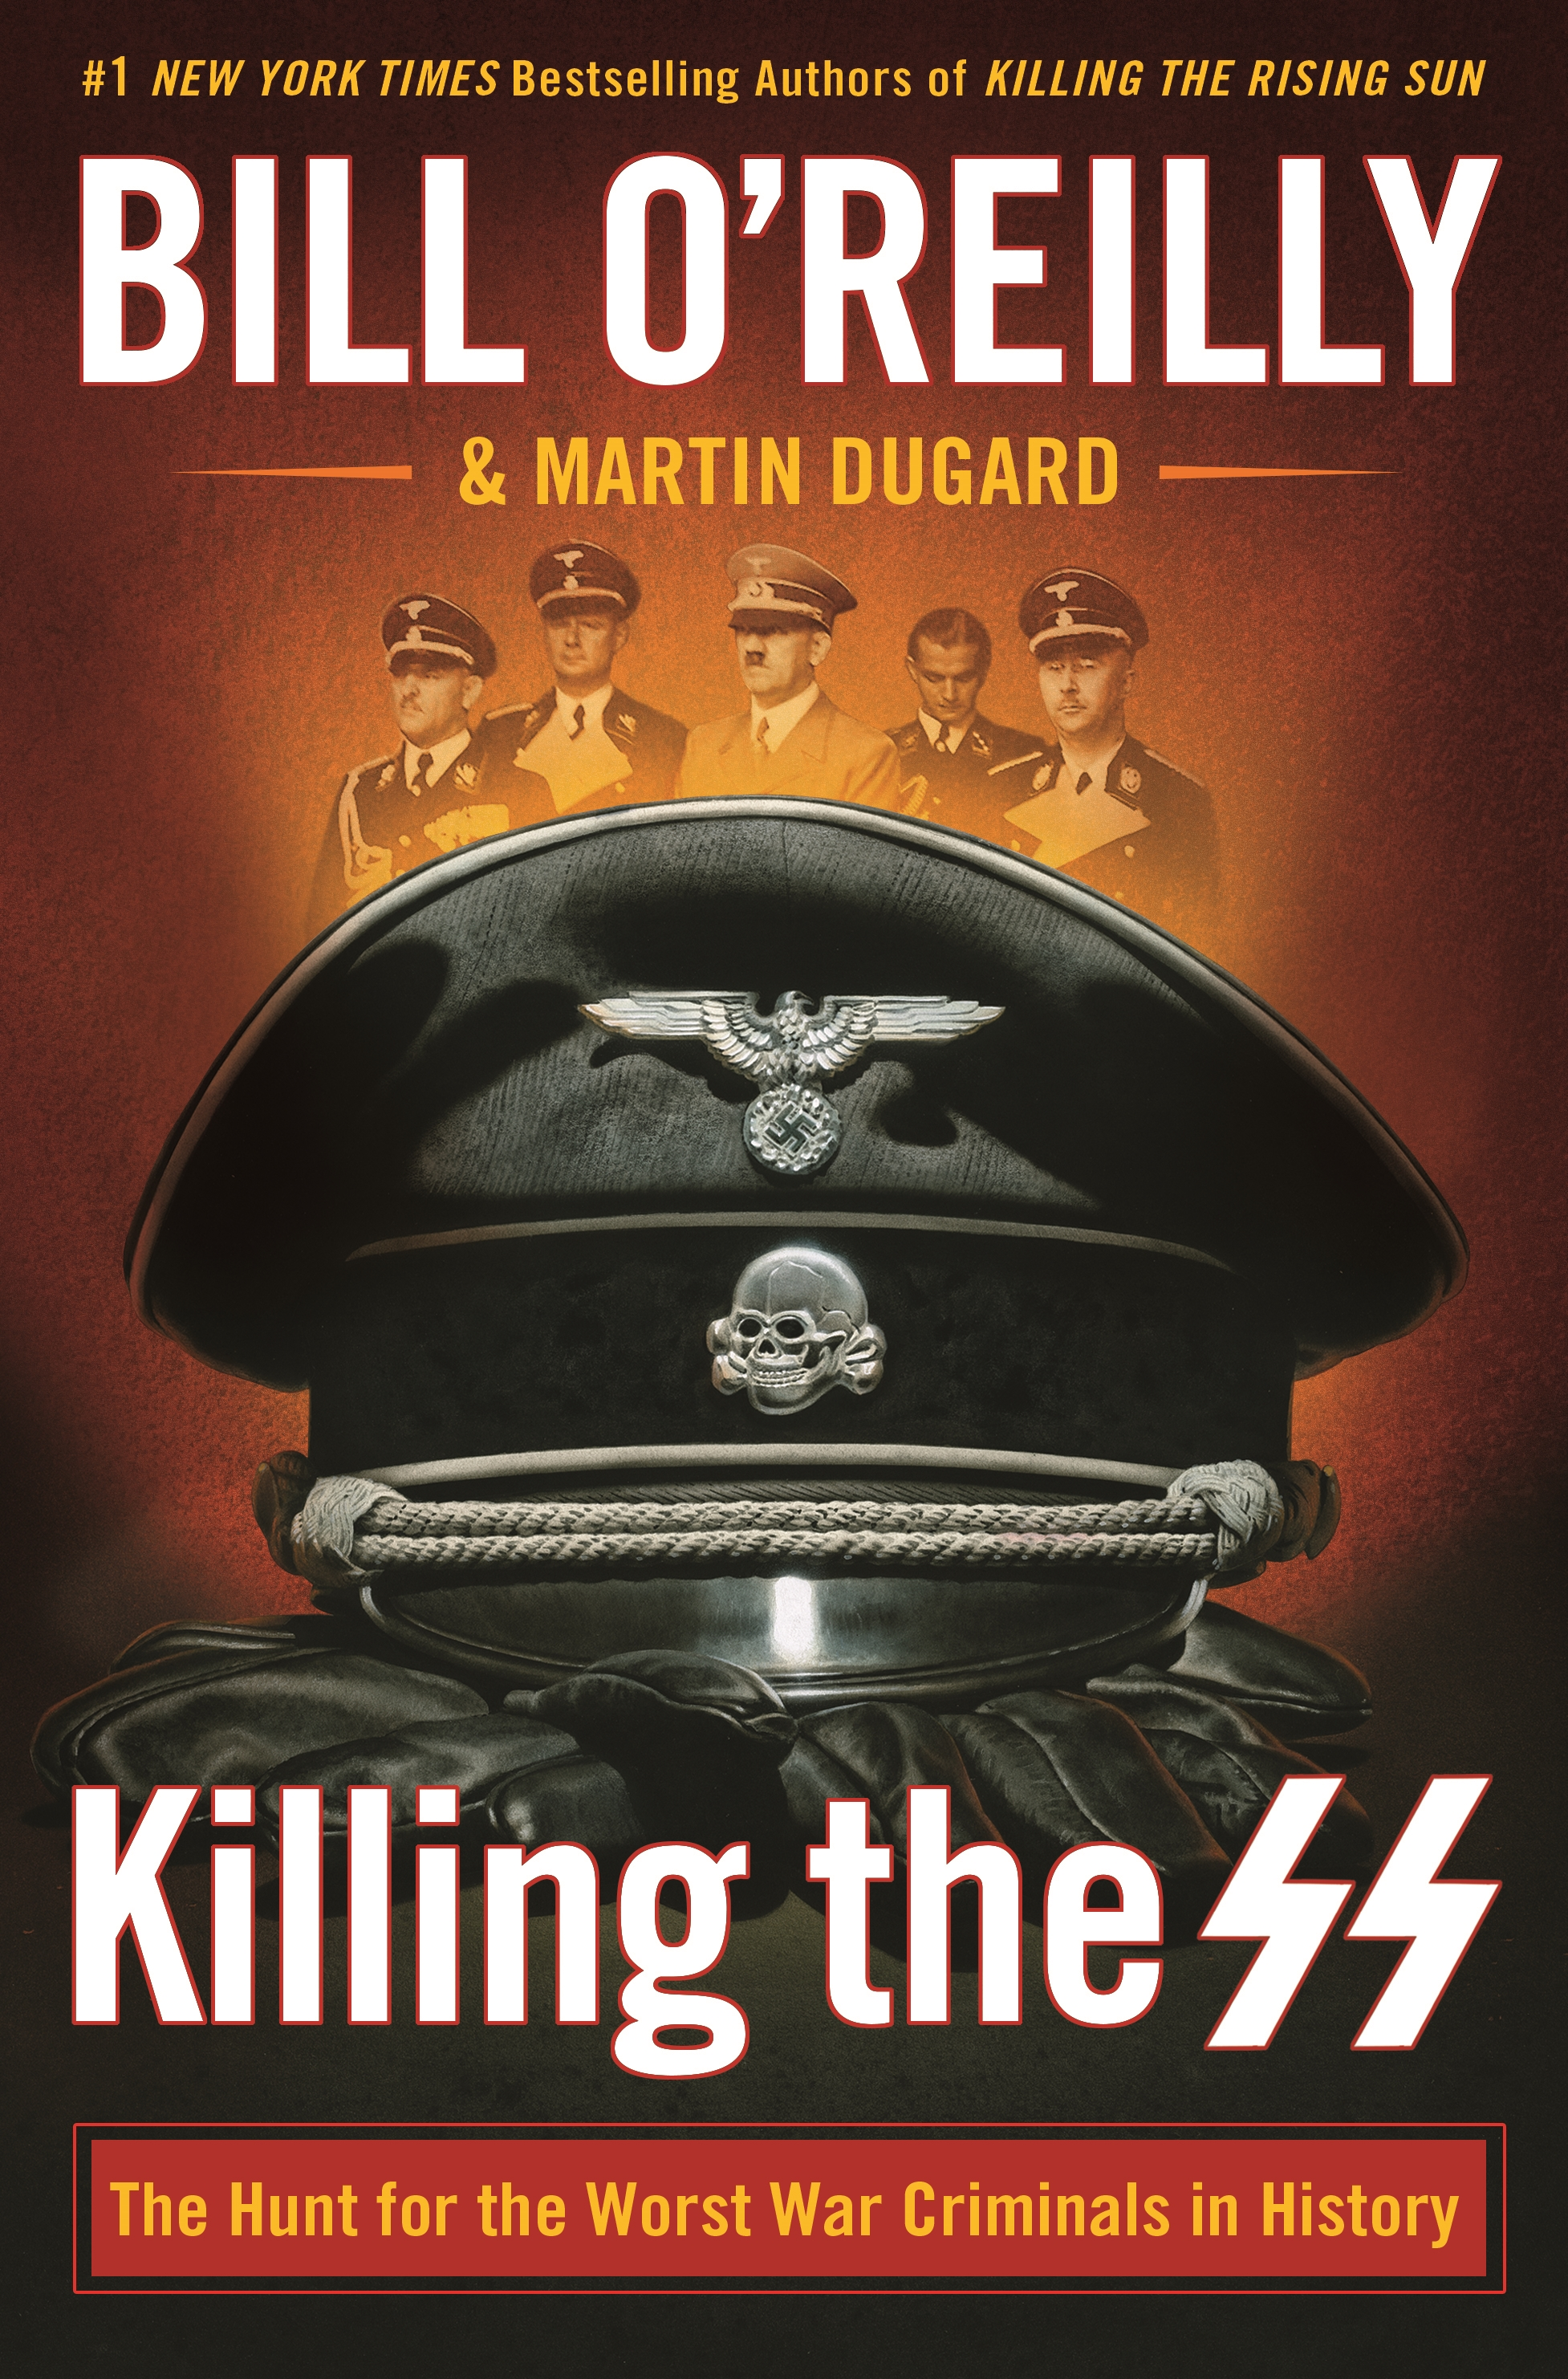 Killing the SS The Hunt for the Worst War Criminals in History